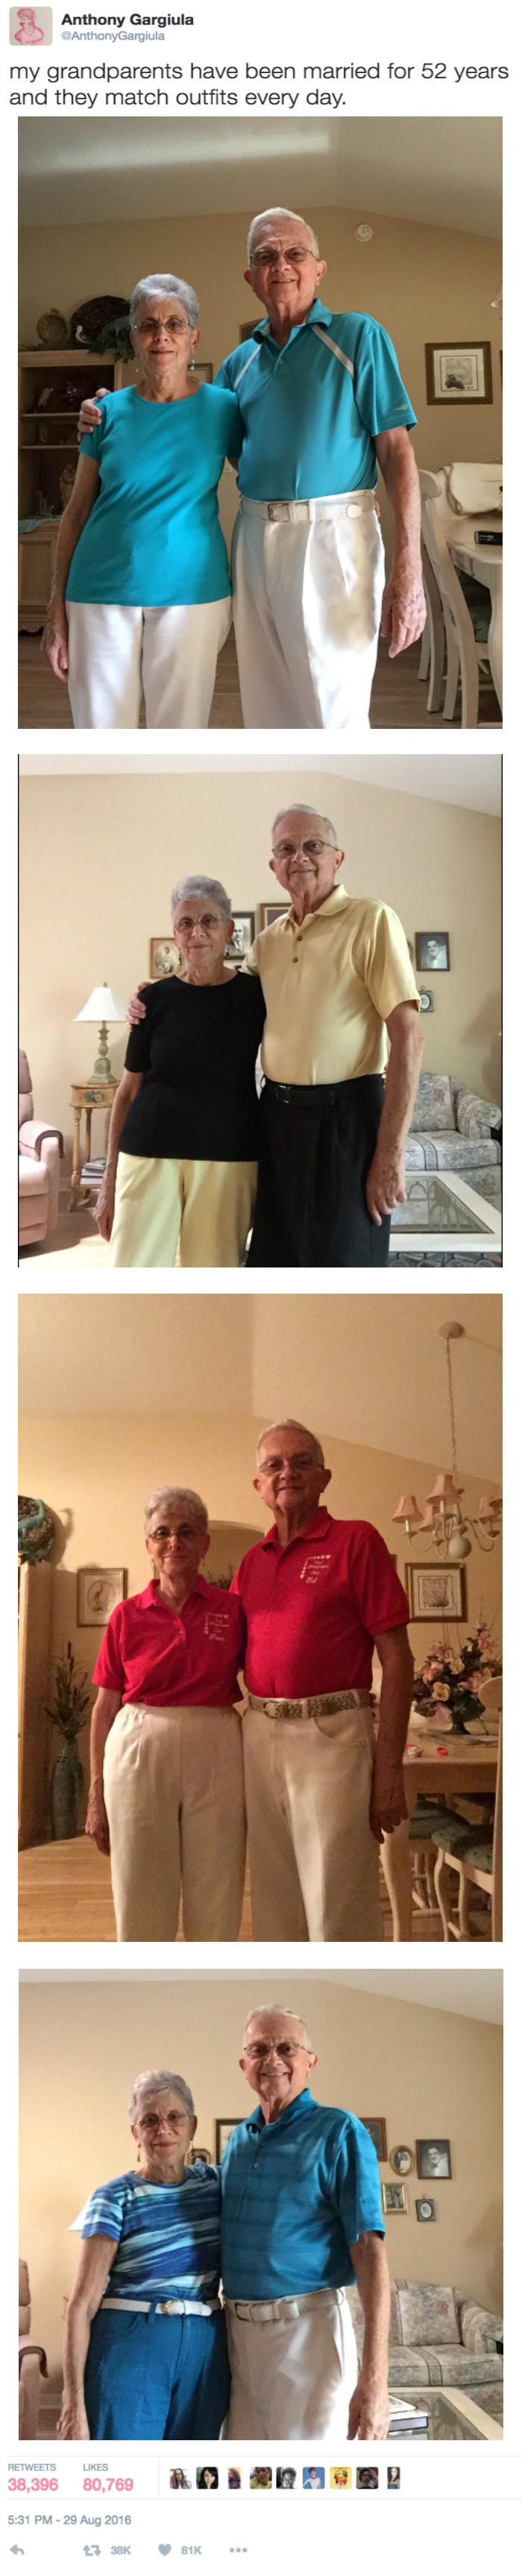 win the key to this 52 year marriage is coordinating matching outfits everyday